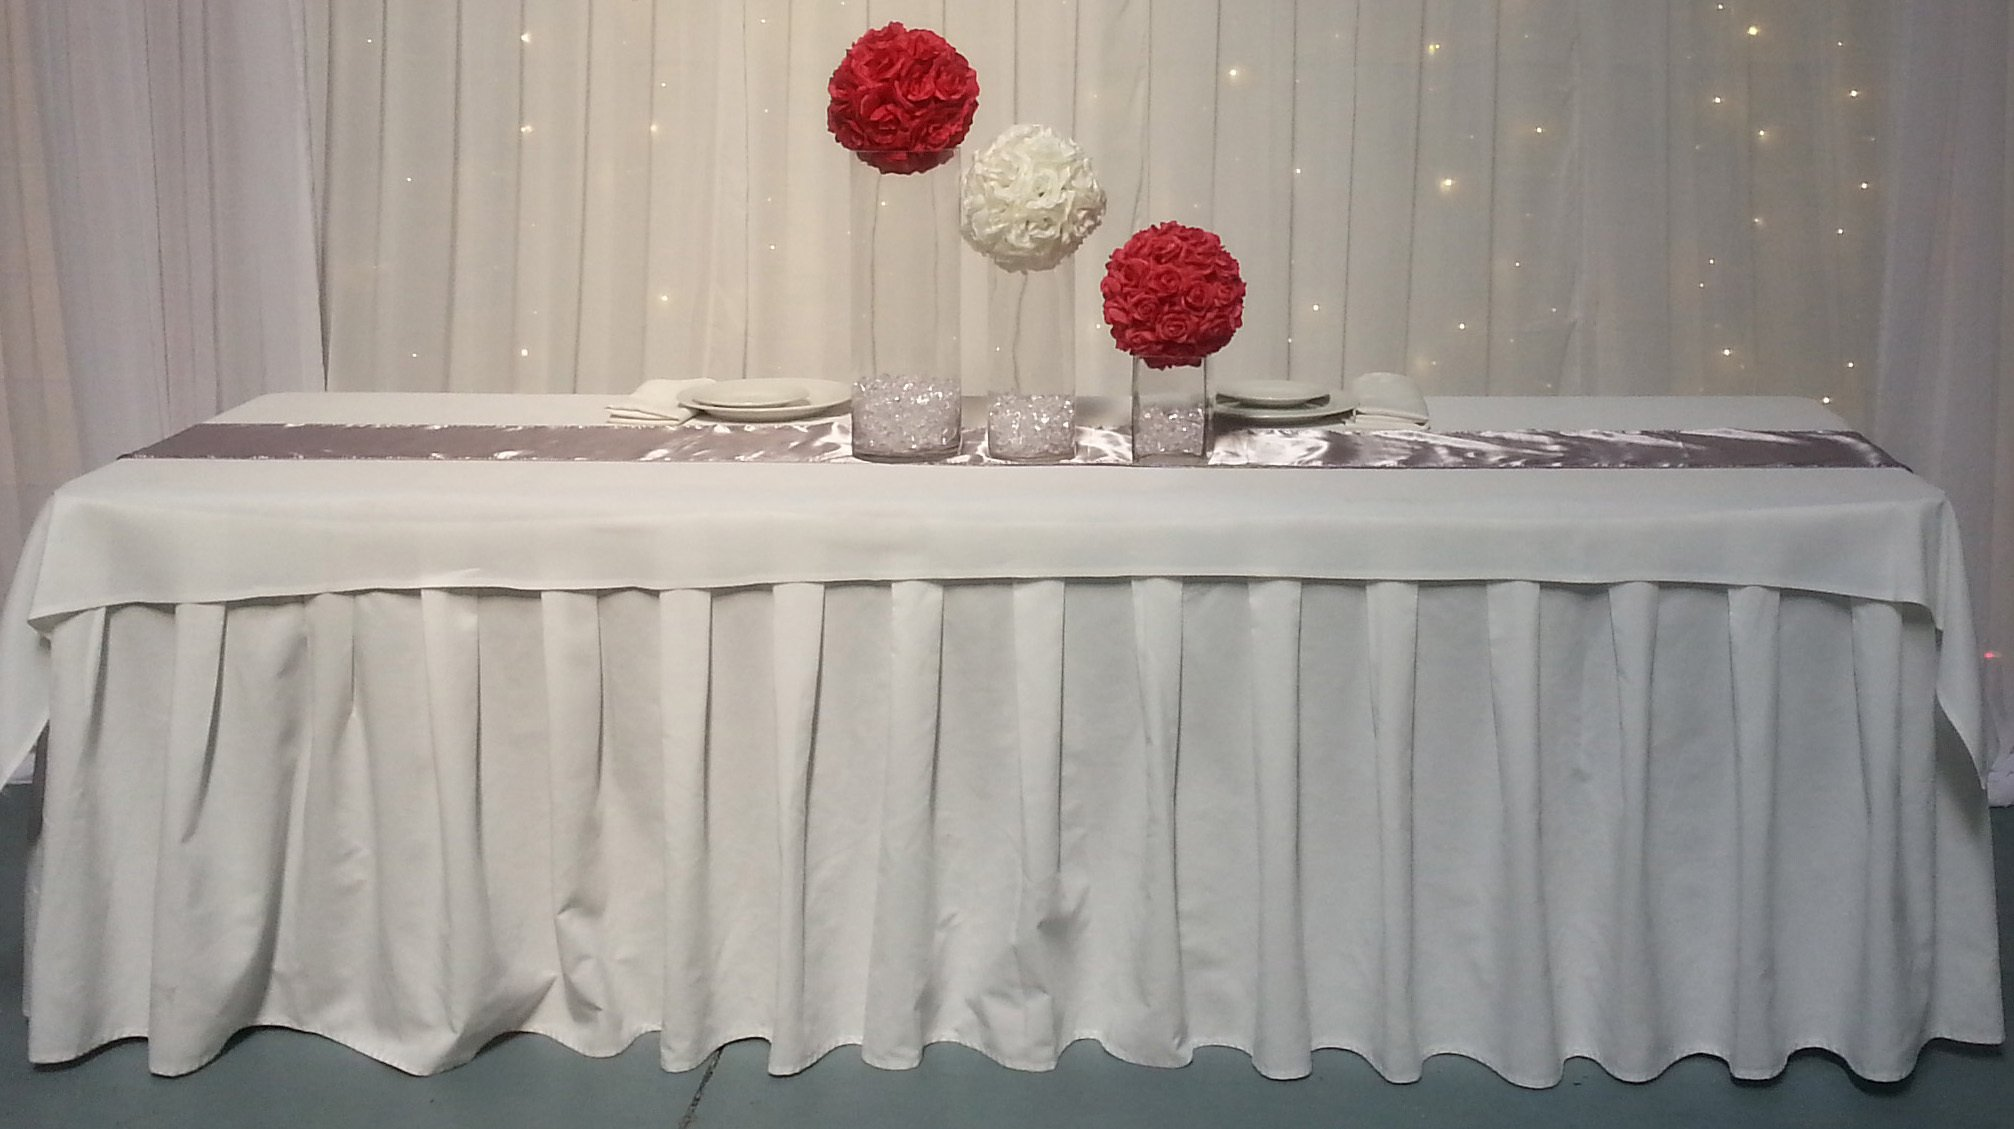 Cotton table skirt available in Black and white in various sizes